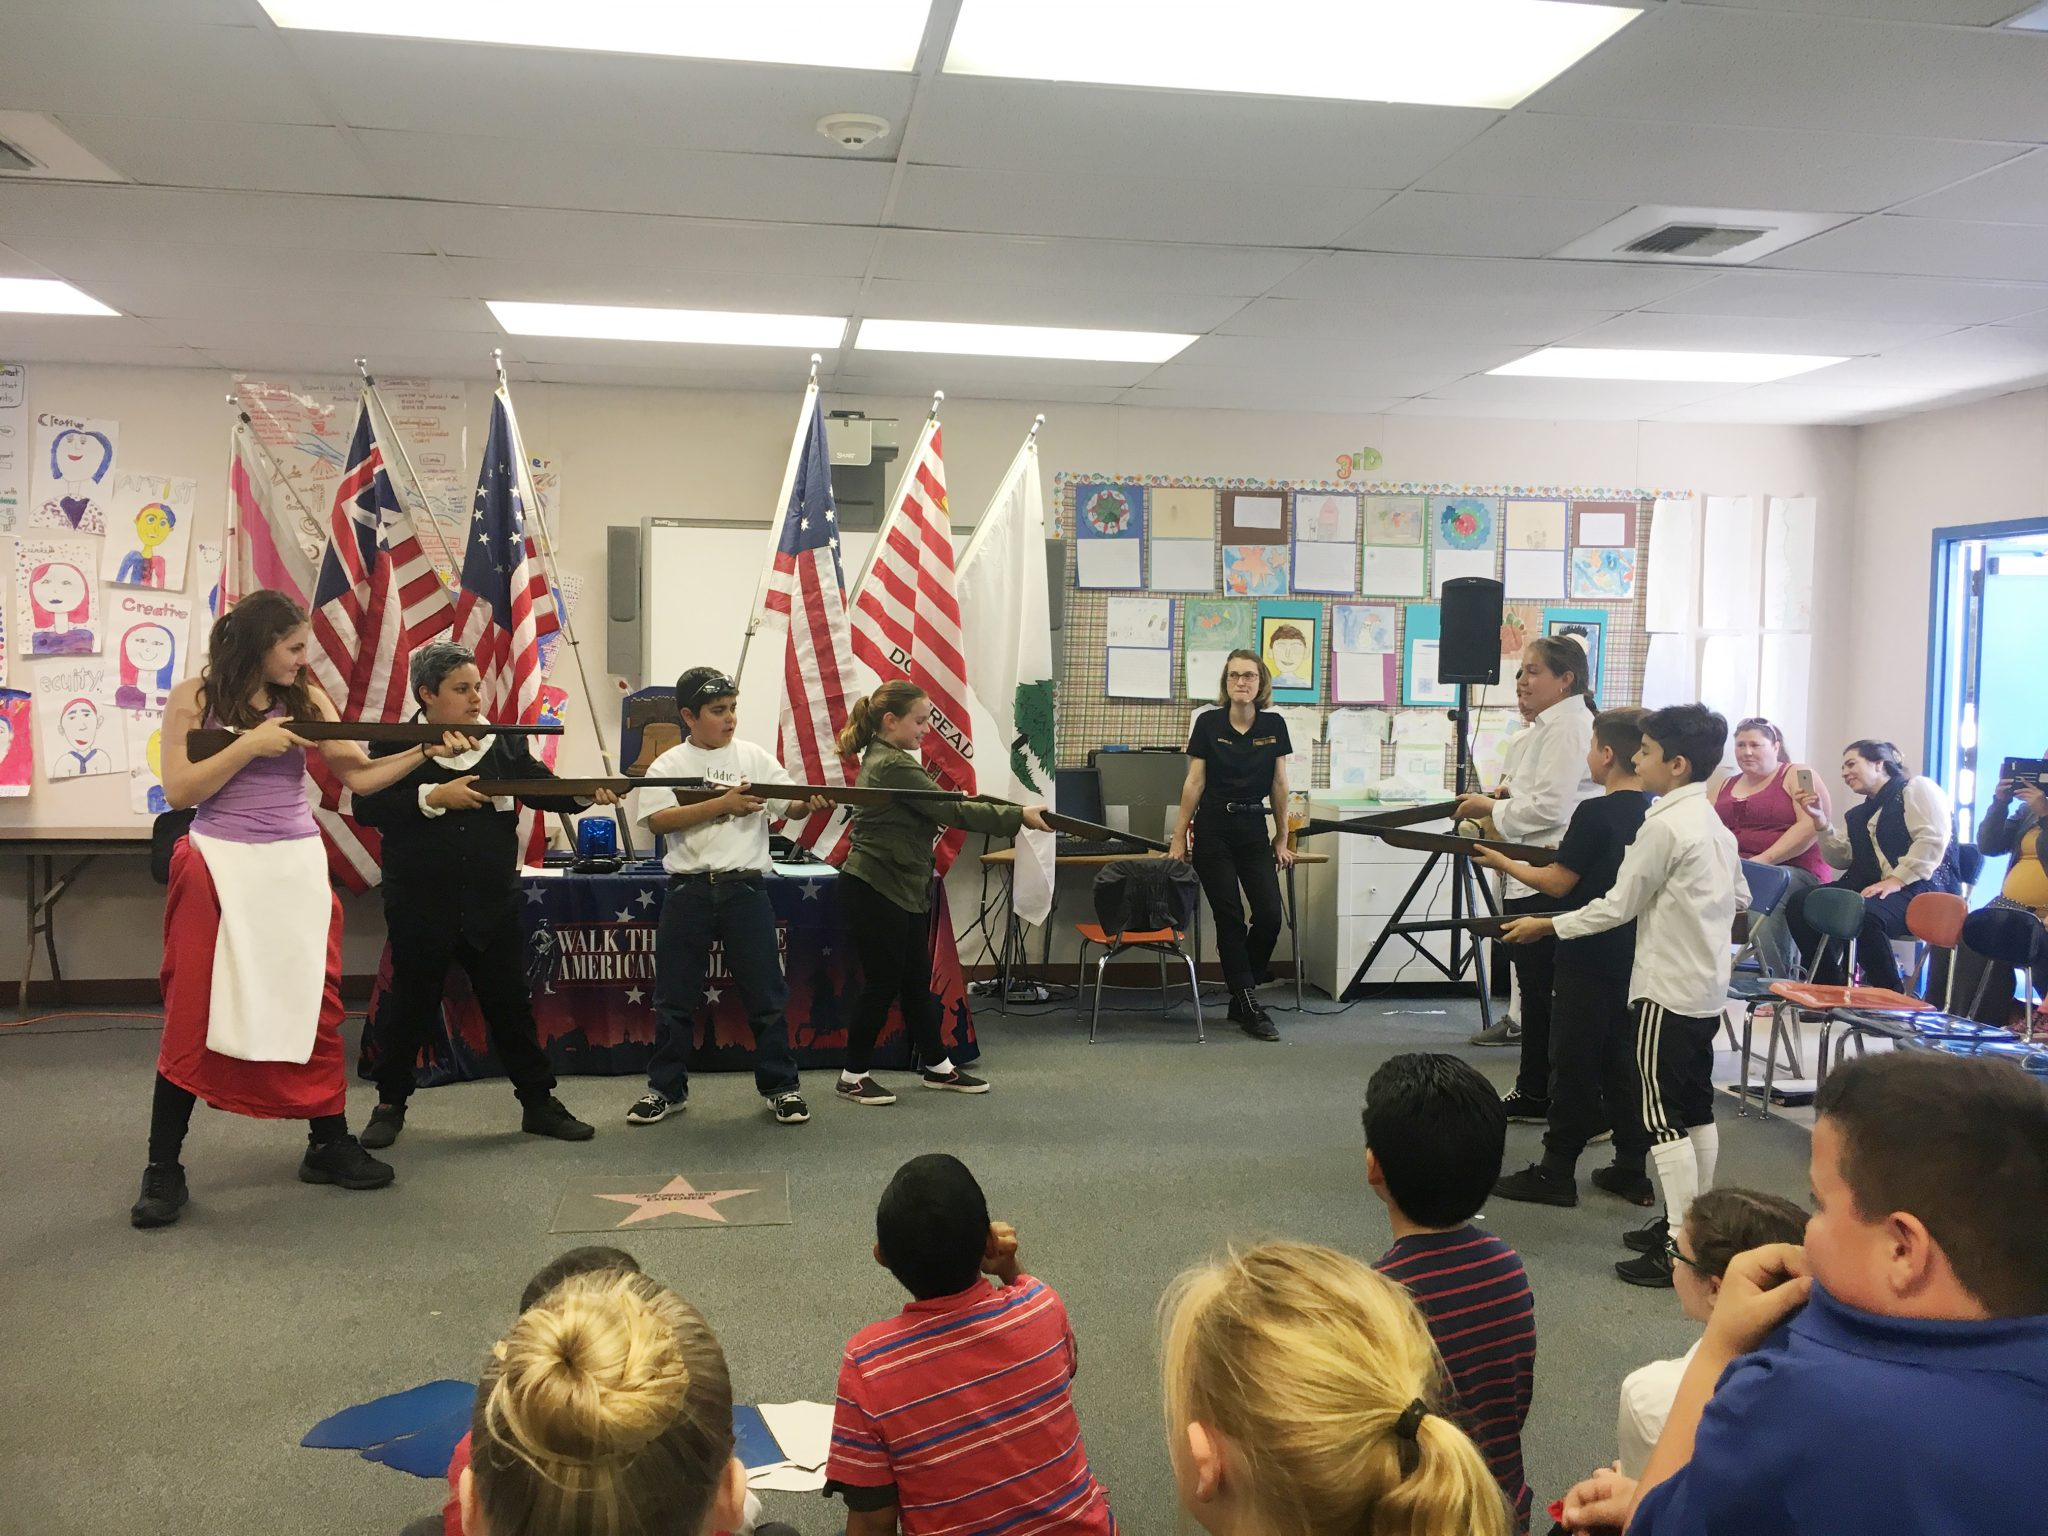 Students in Mrs. Lutz' 5th grade class at Las Juntas Elementary re-enact scenes from the American Revolution during a program at the school March 28, 2017. (MARTINEZ TRIBUNE / On File)